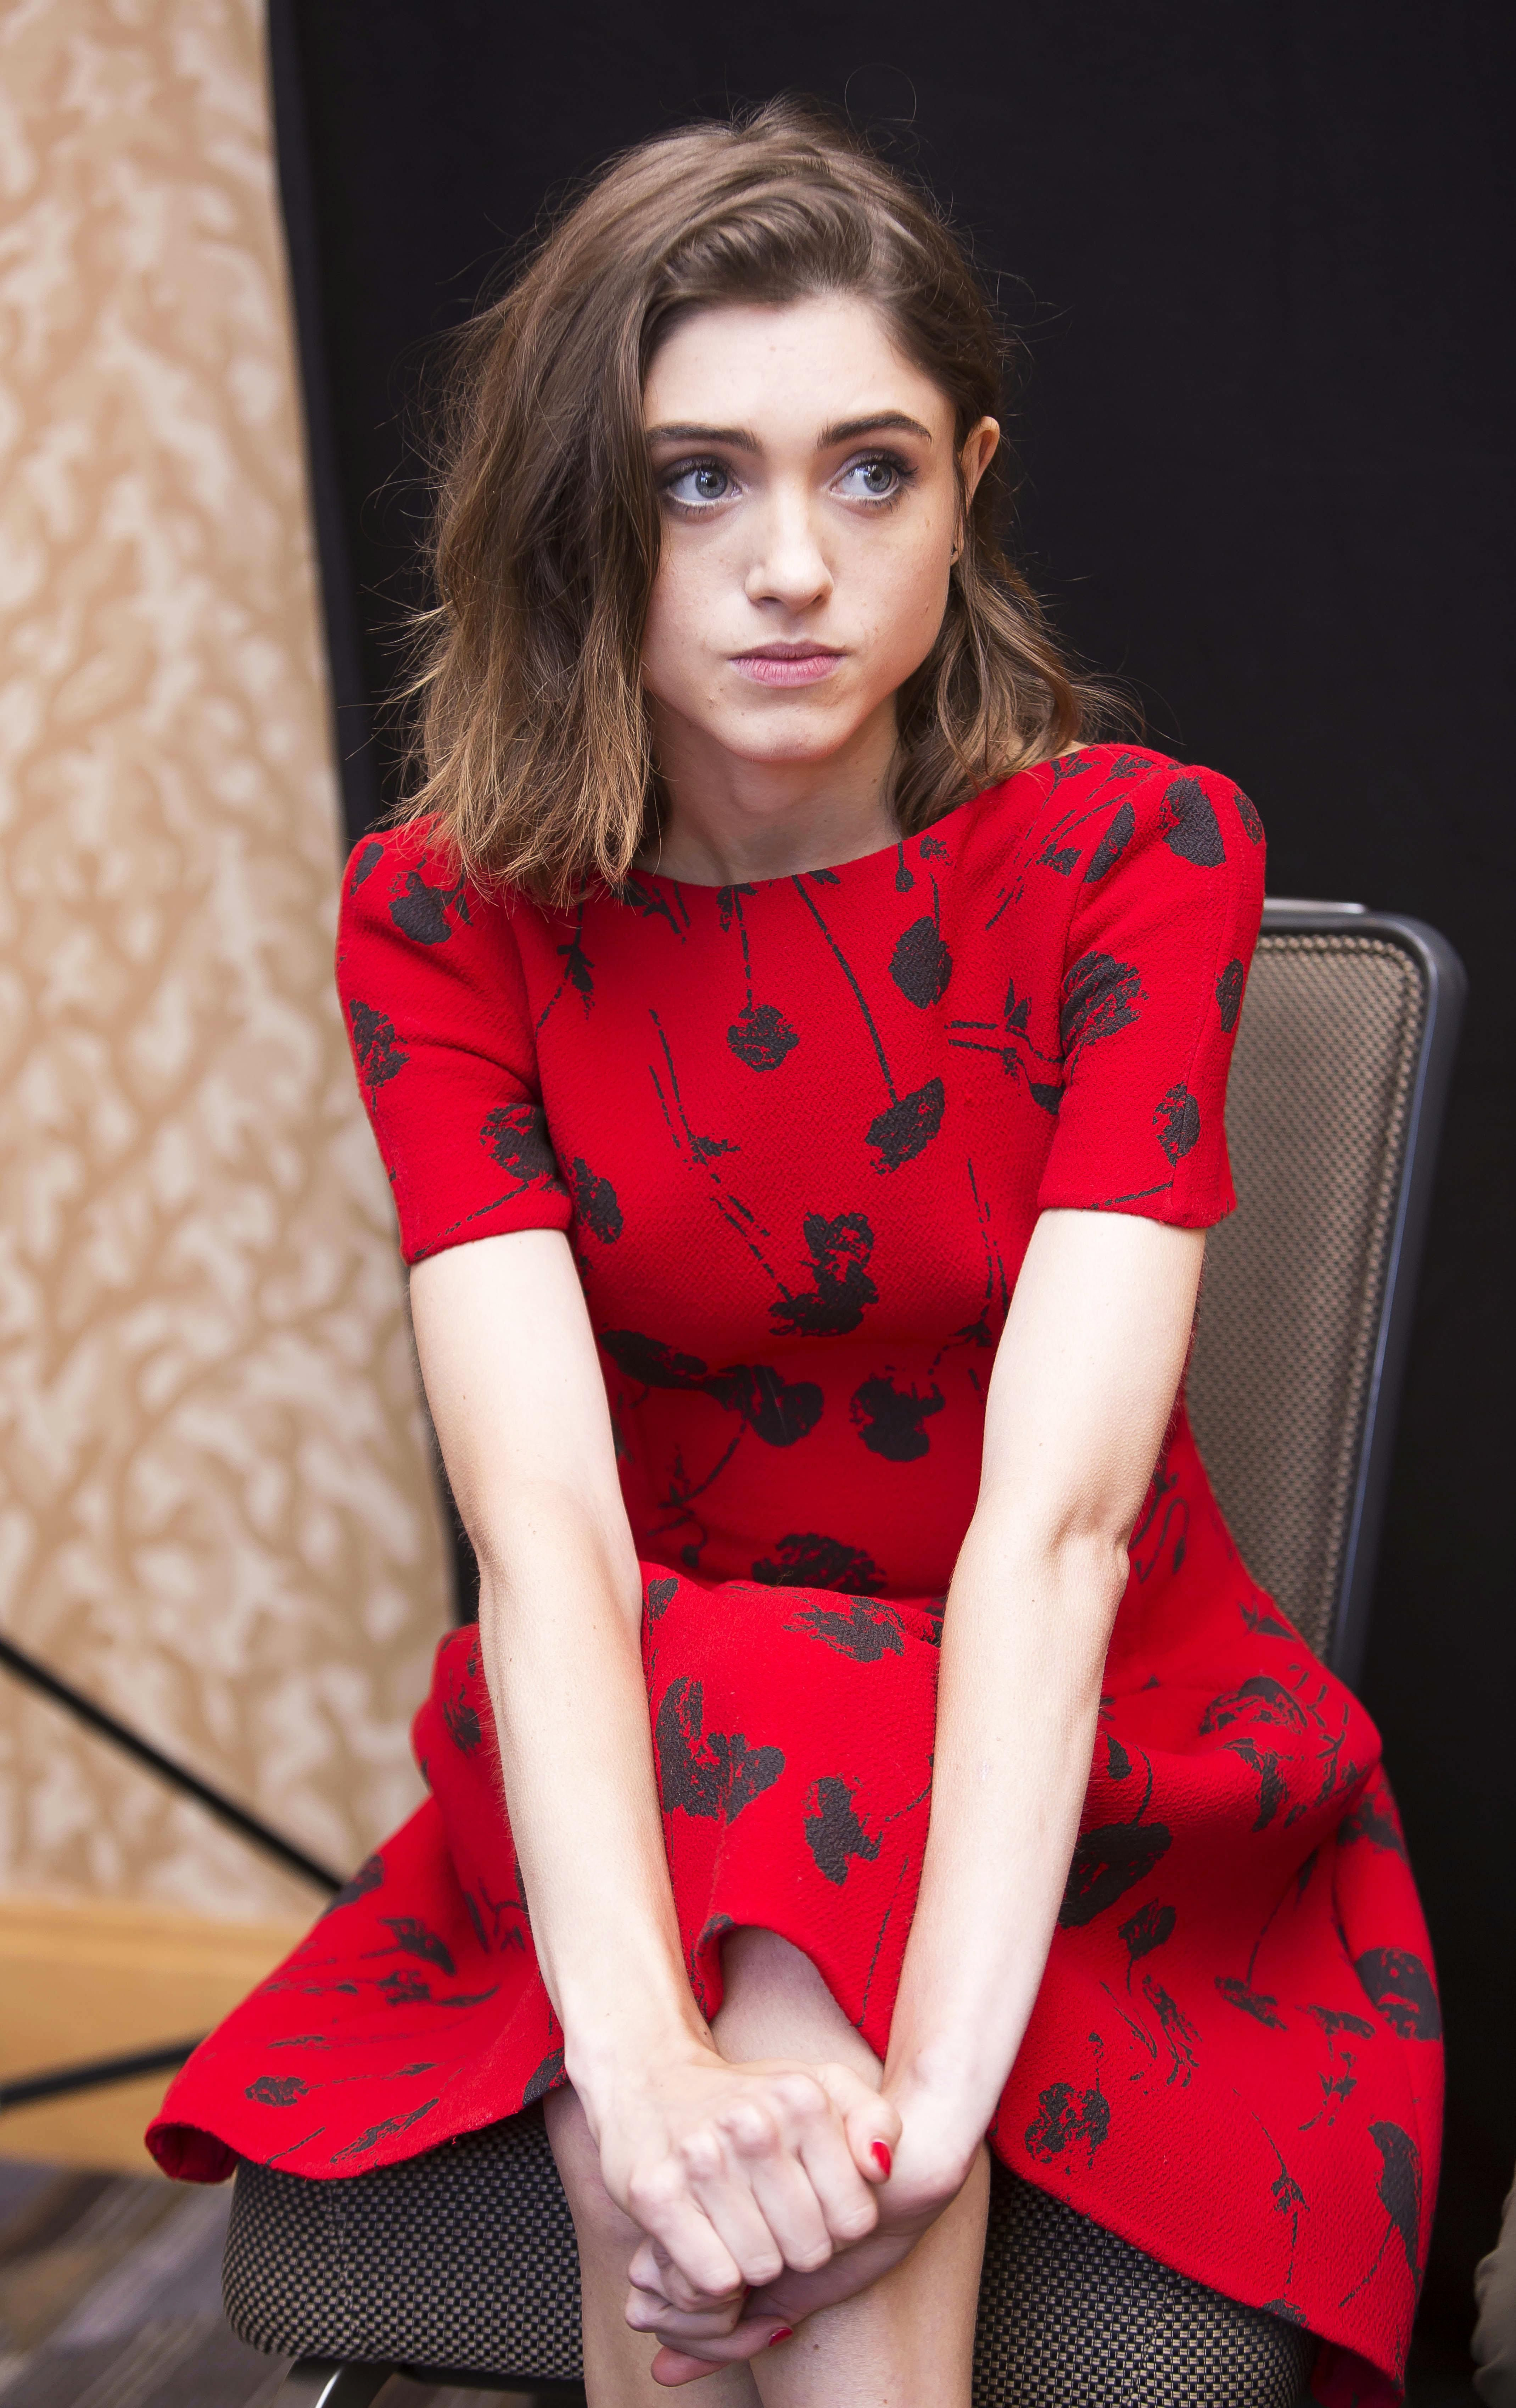 Natalia Dyer nudes (57 foto and video), Tits, Cleavage, Feet, lingerie 2017